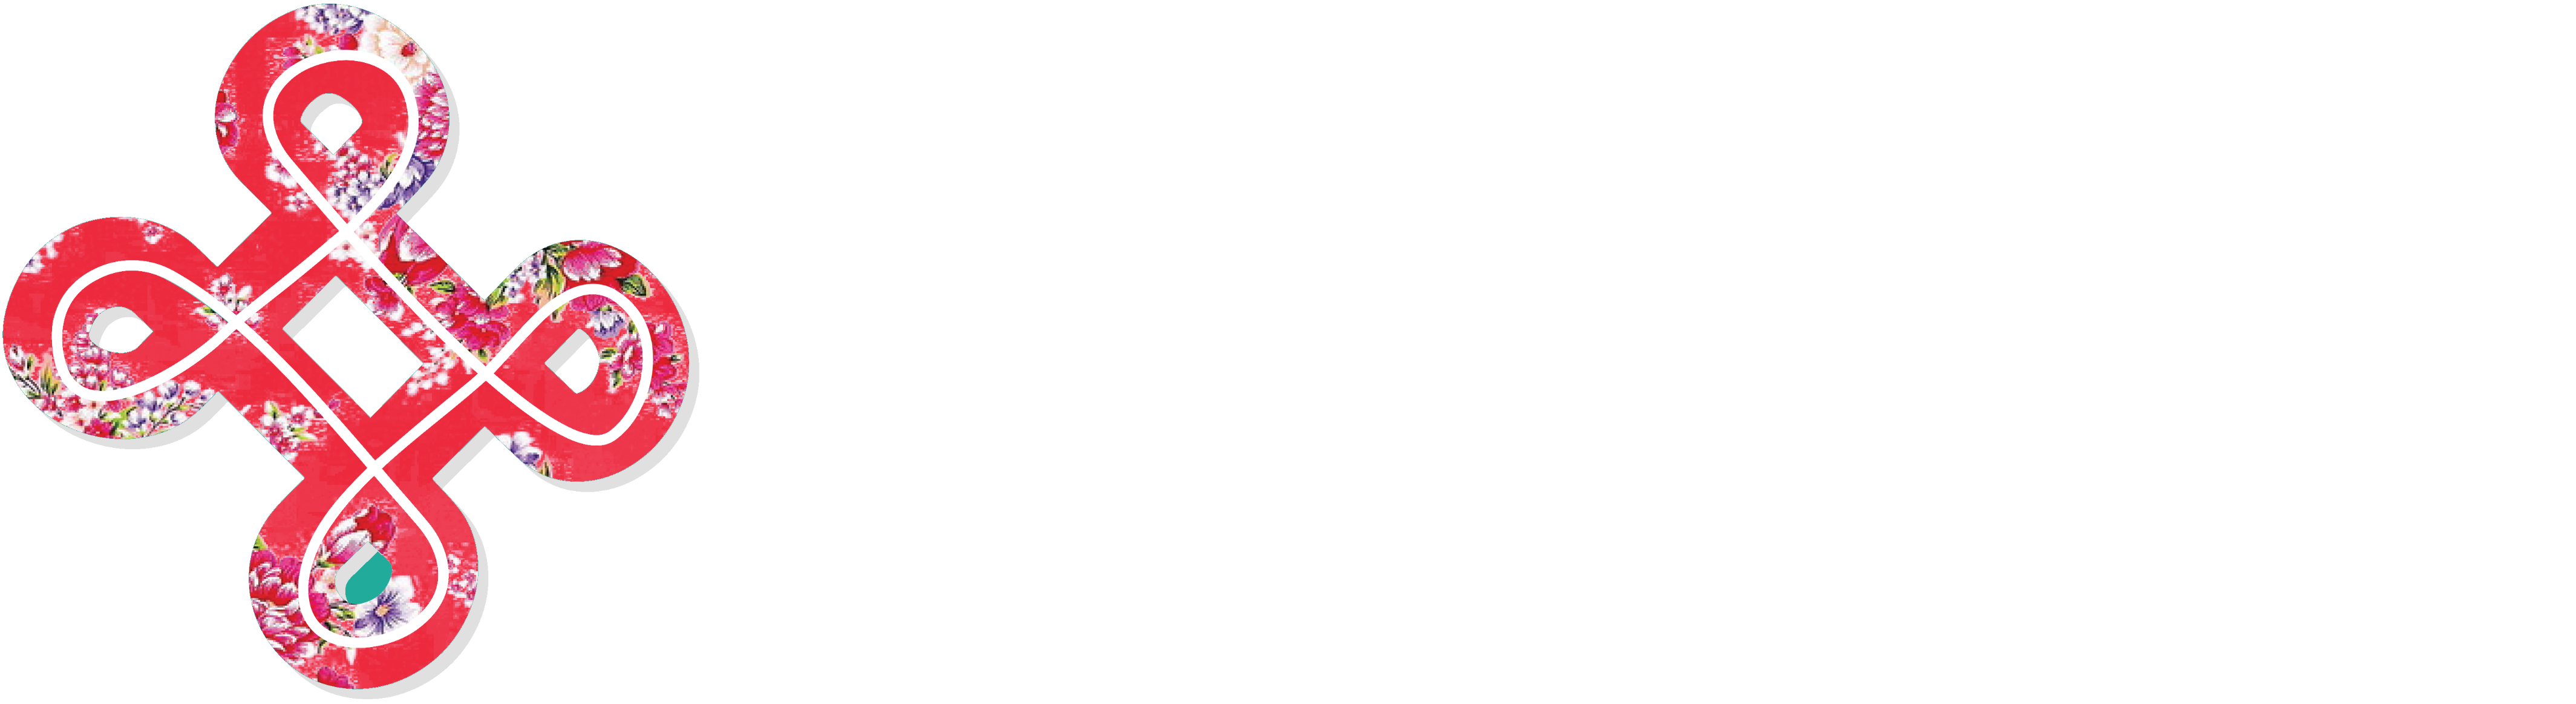 Global Voices Asia Pacific Citizen Media Summit 2019